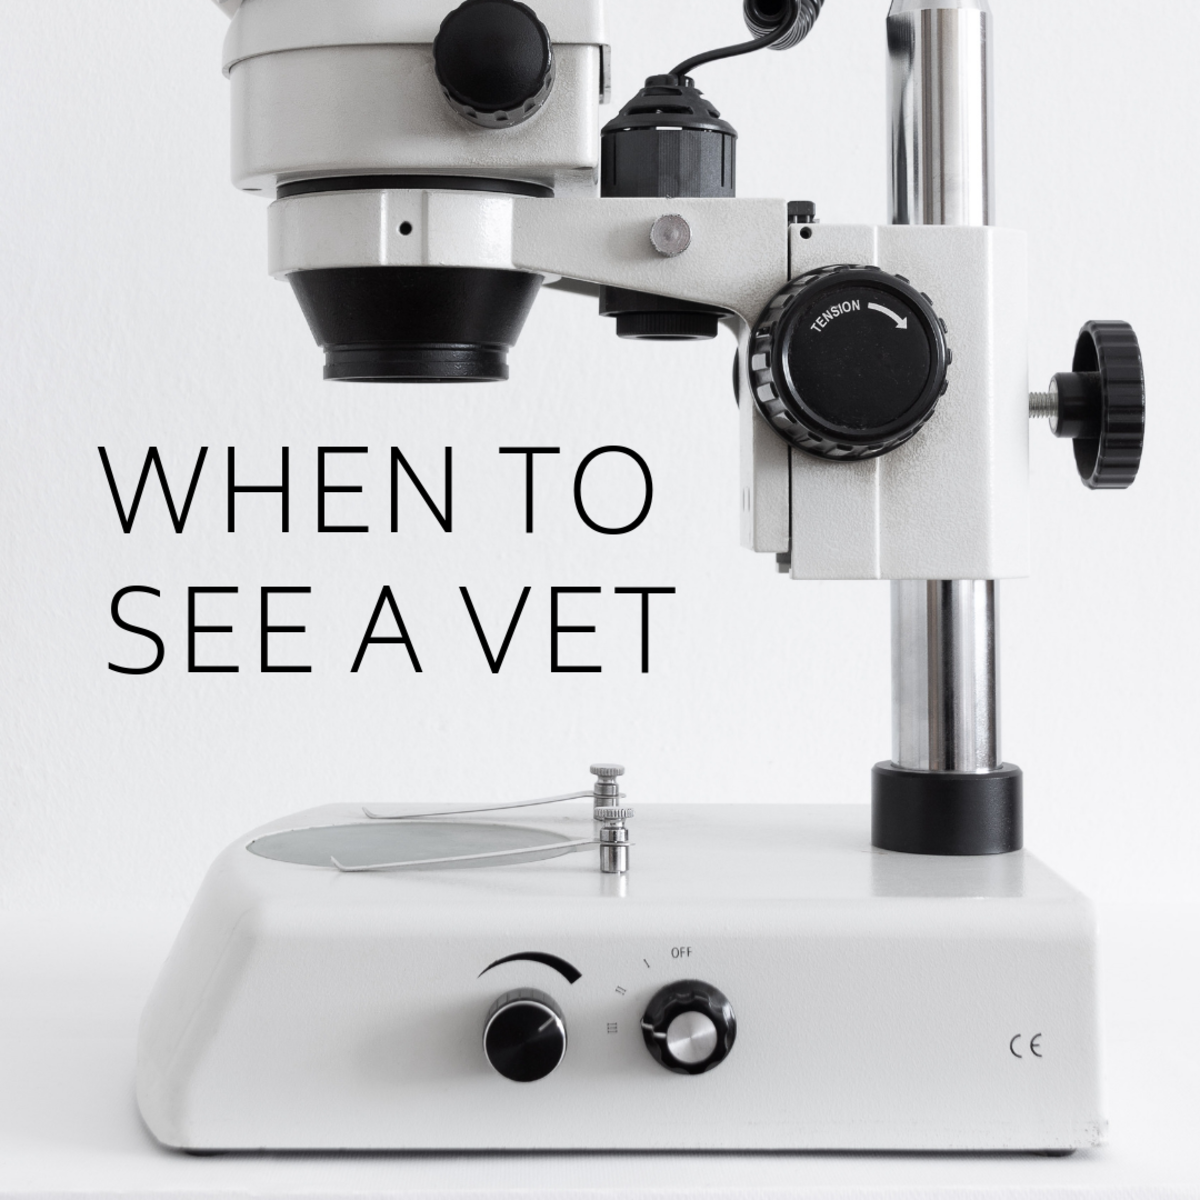 When to see a veterinarian.